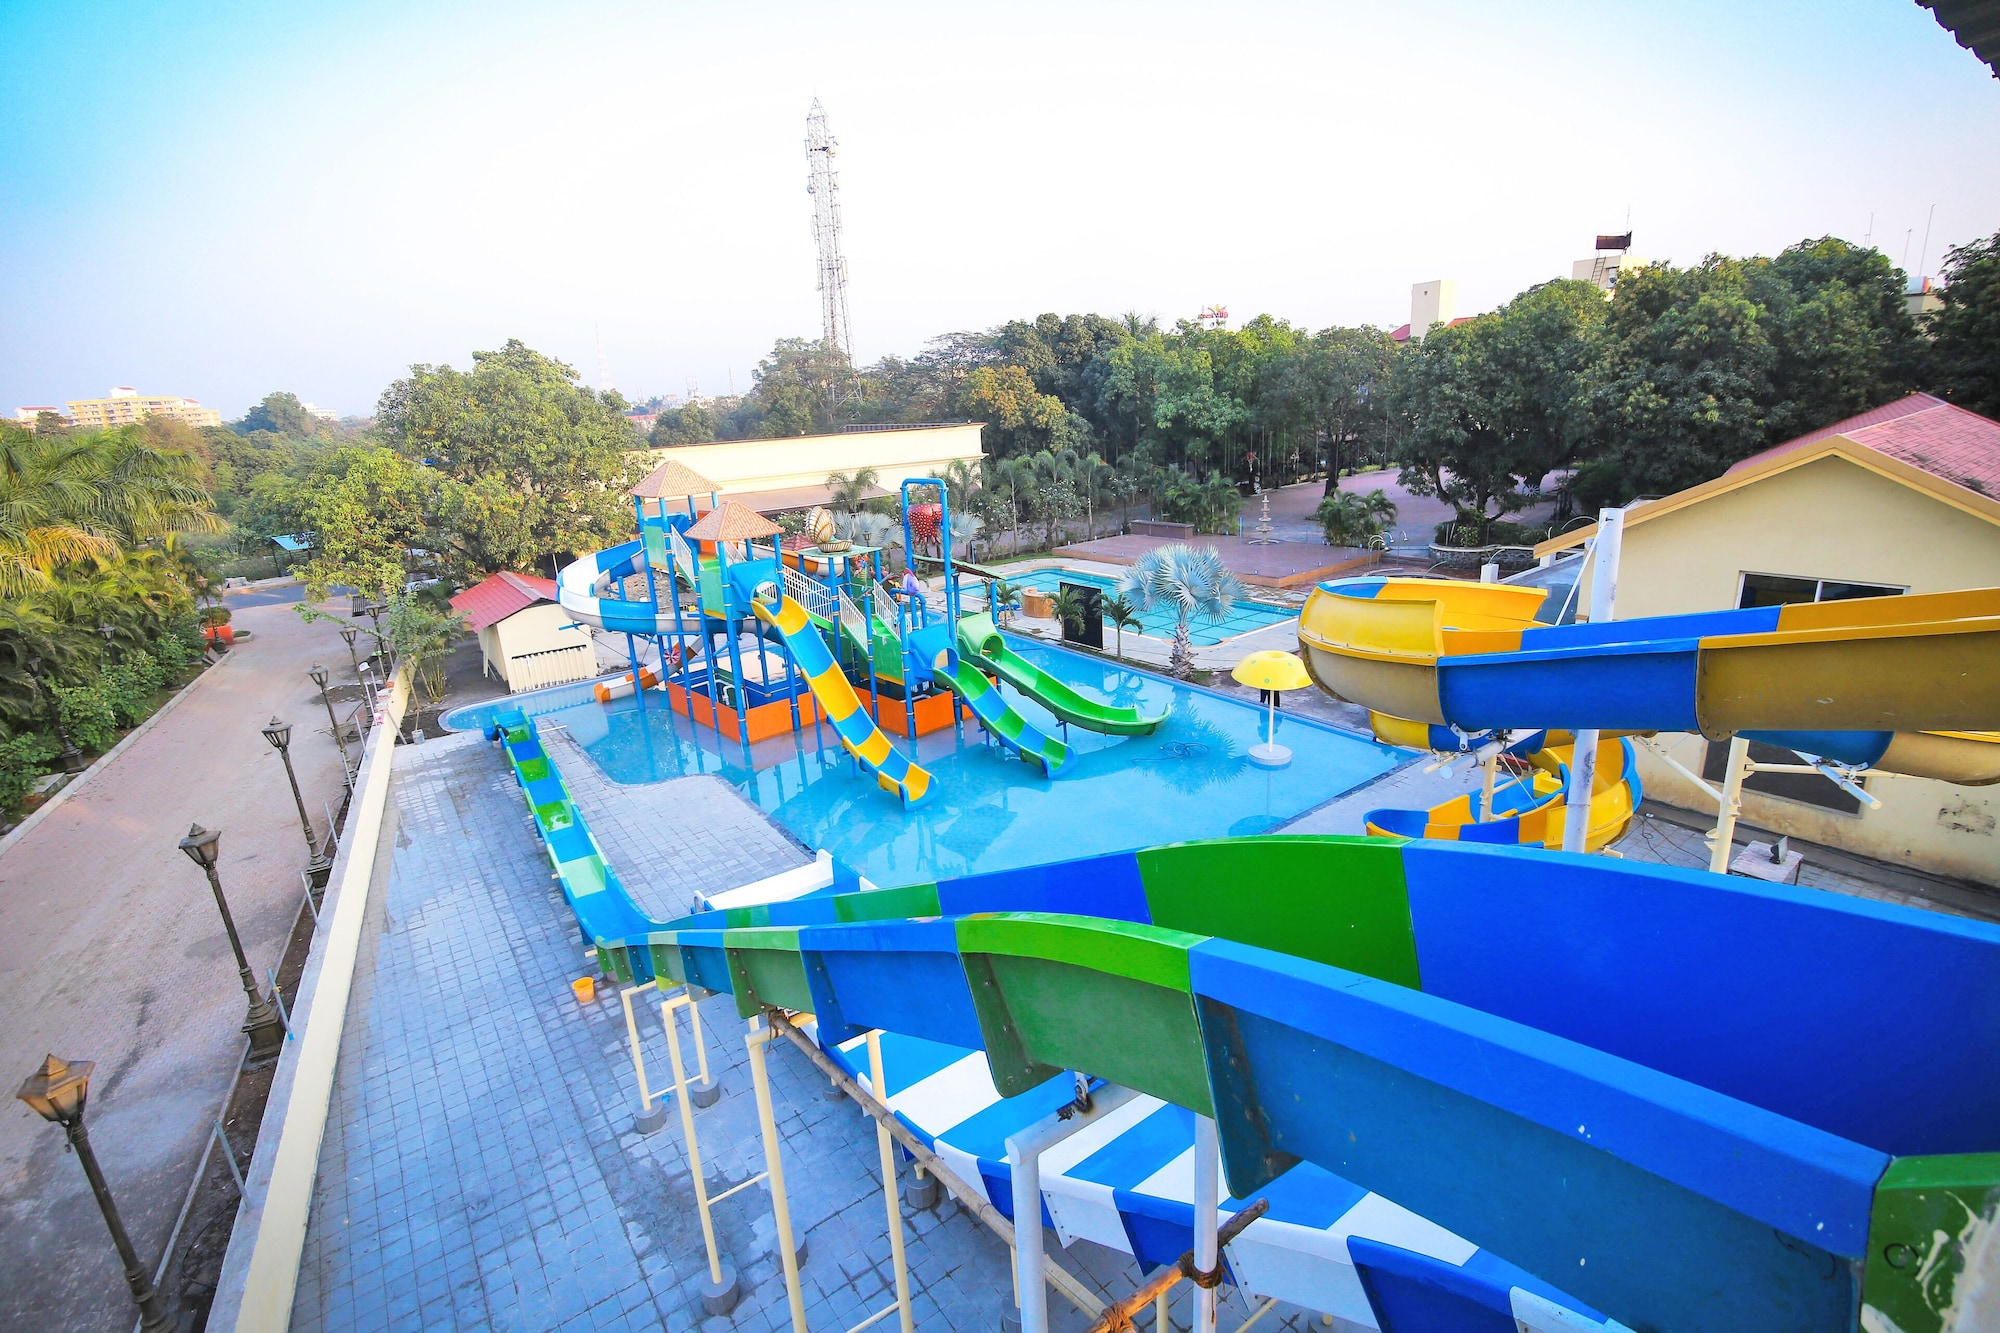 Daman Ganga Valley Resort, Dadra and Nagar Haveli